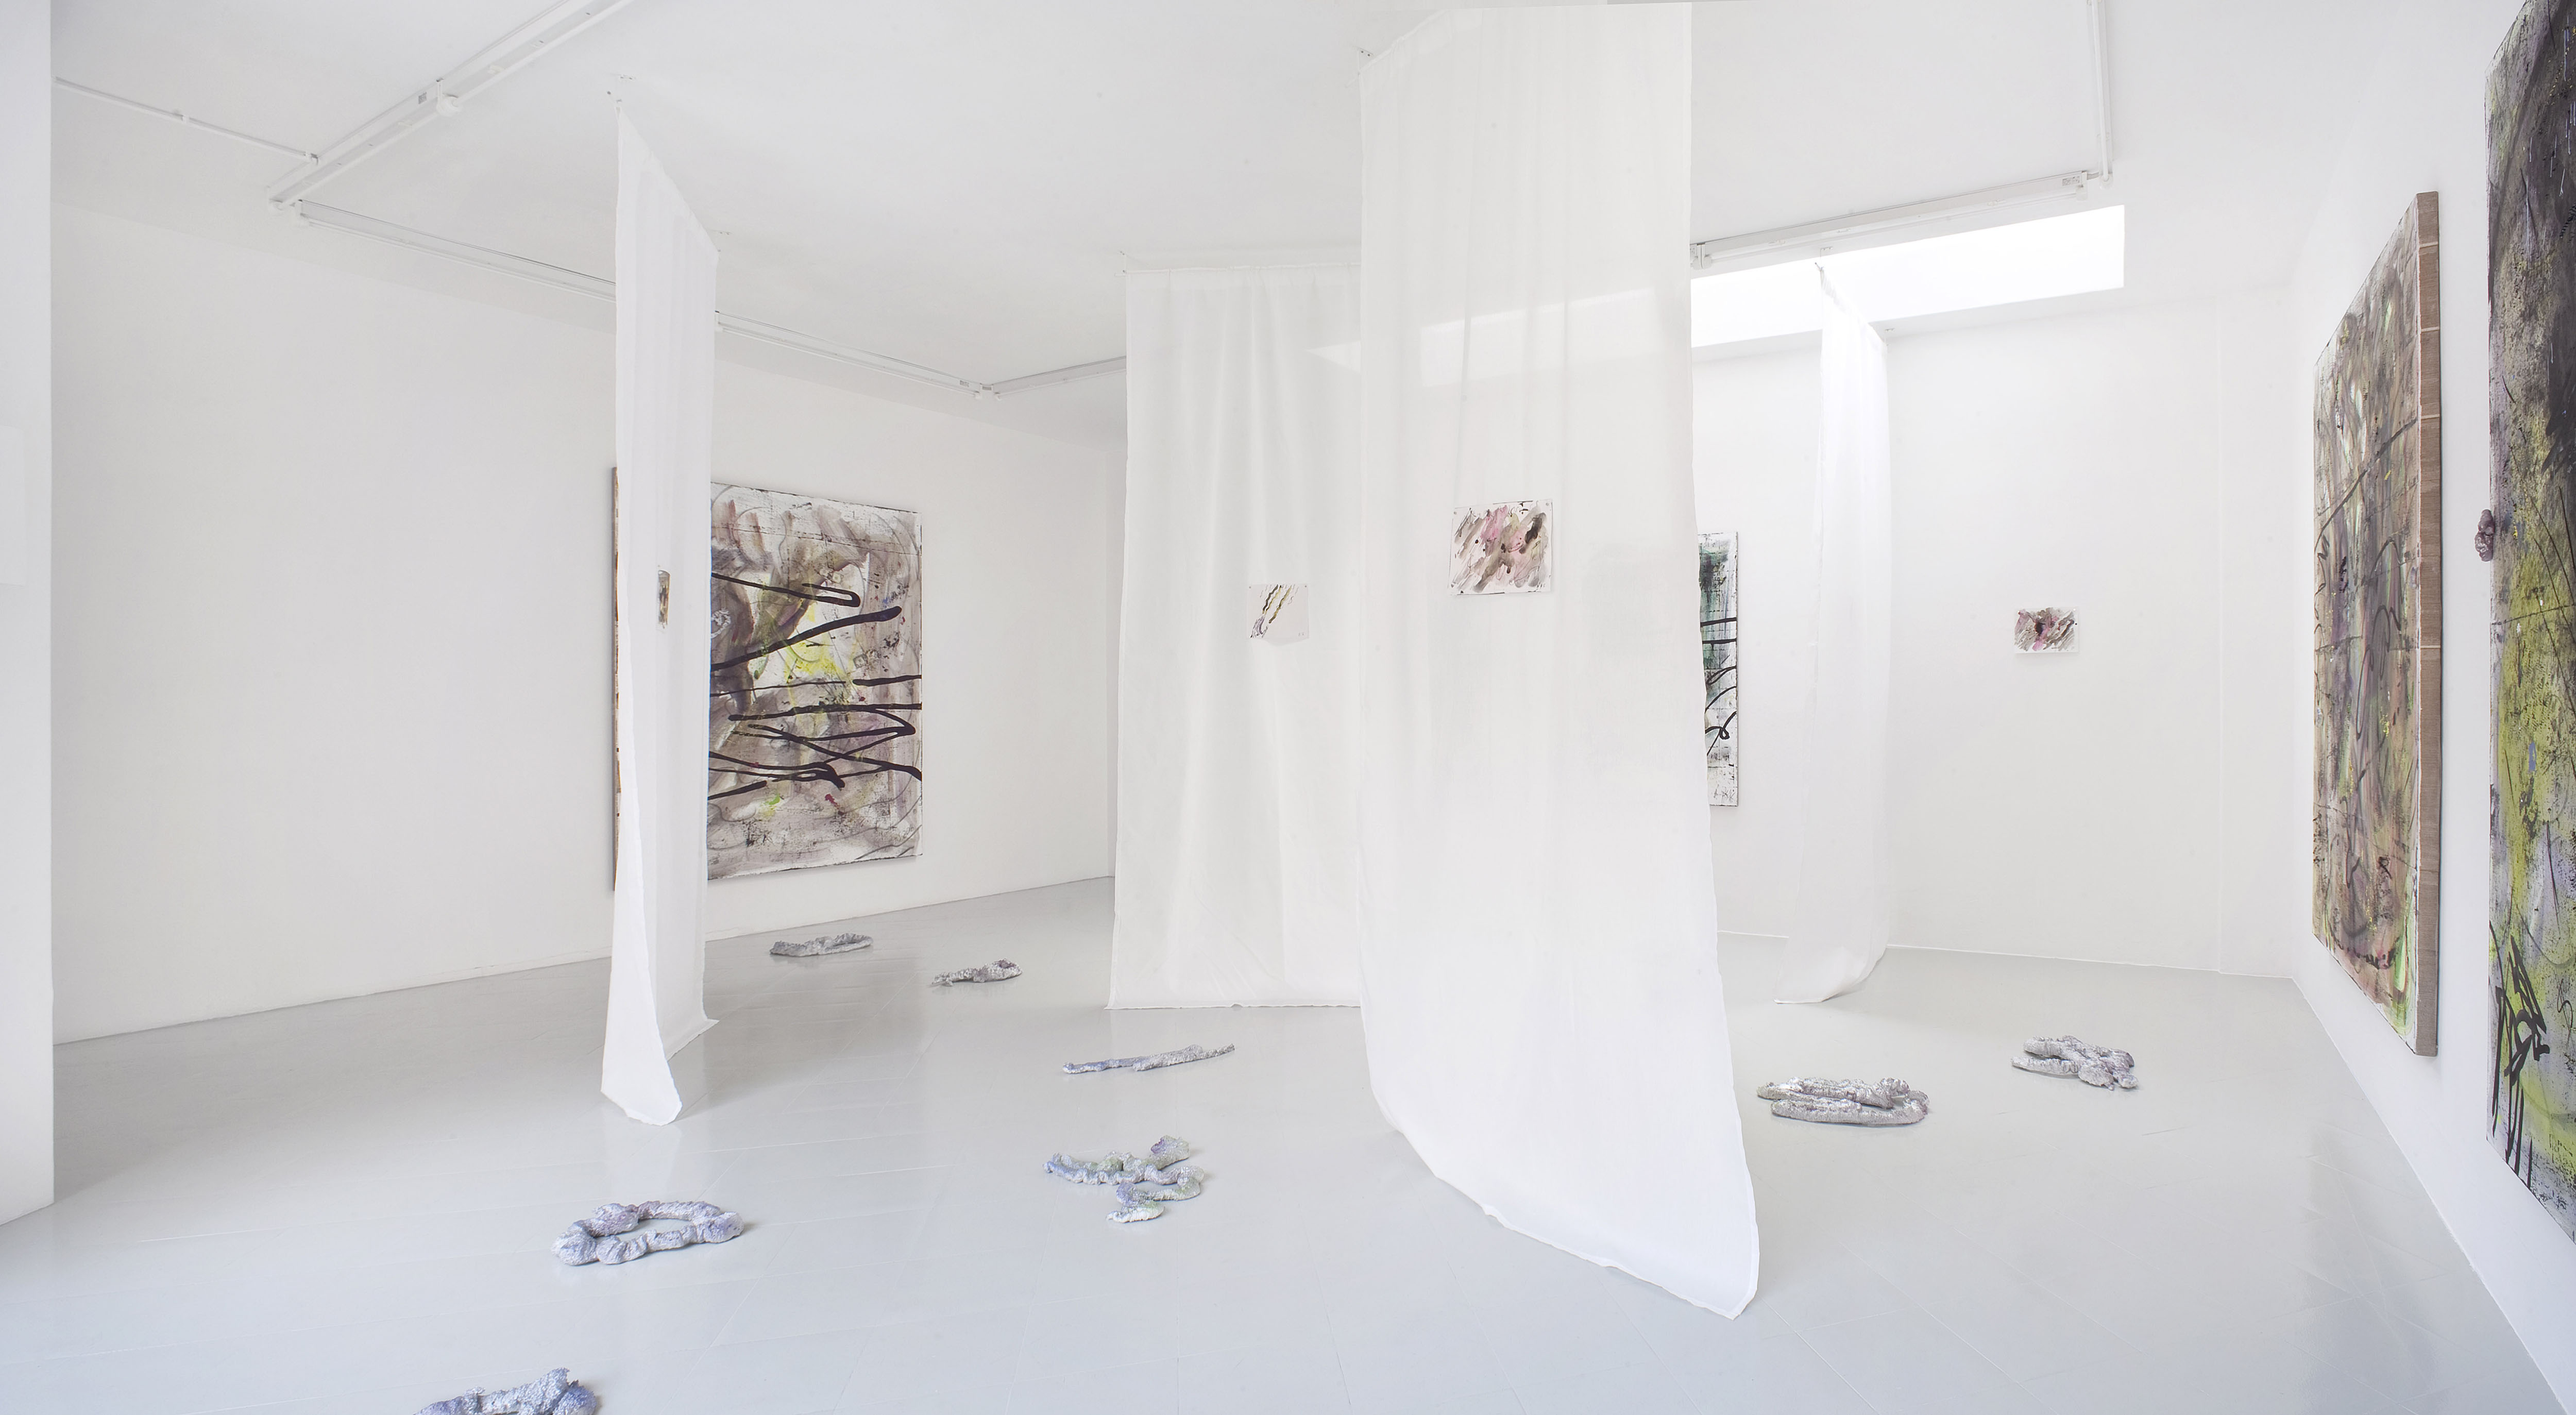 11 - Henning Strassburger Superet Exit System Installation View 2016 Studiolo Milan copia 2